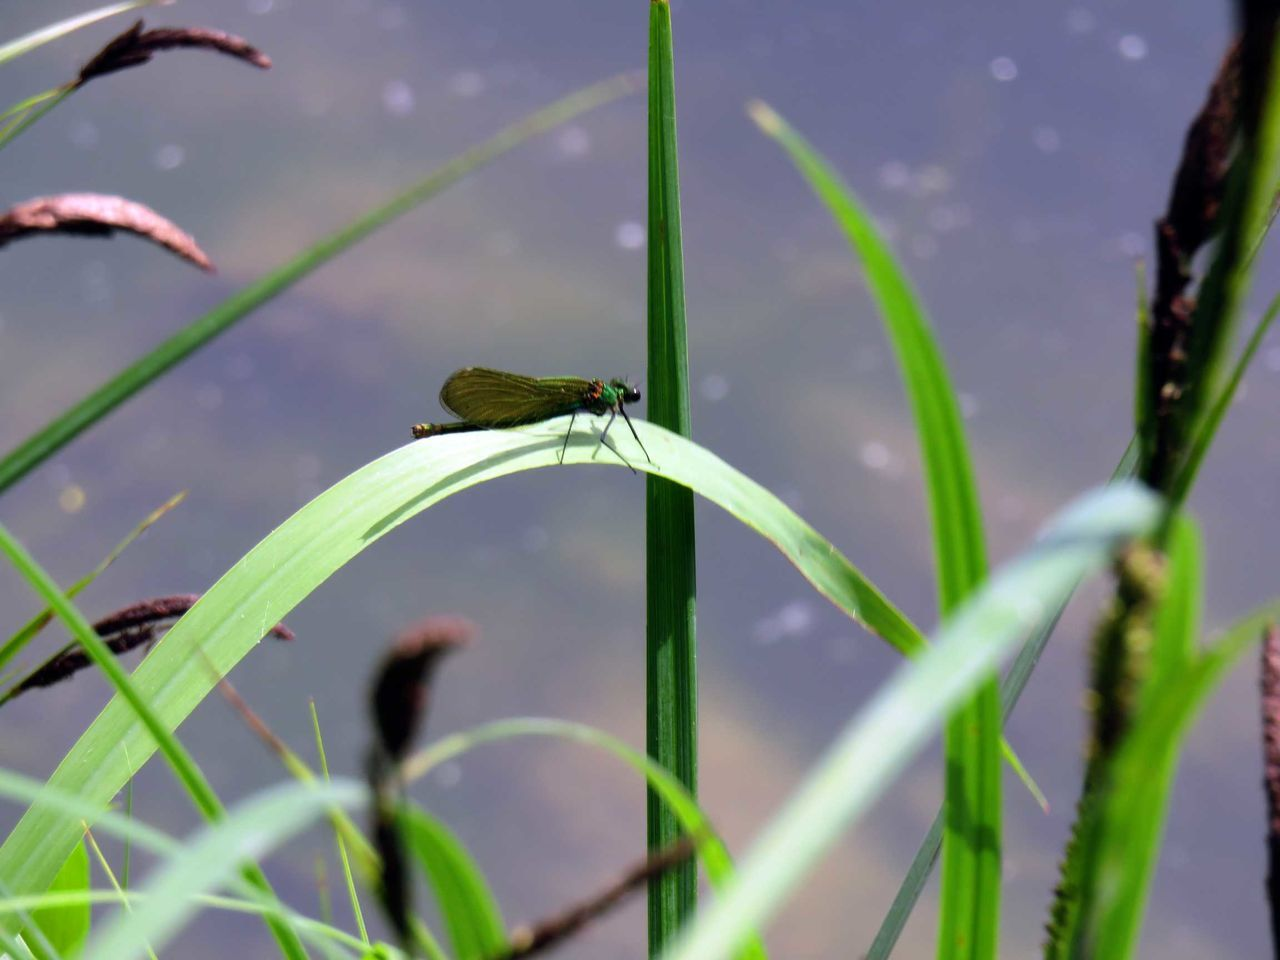 Green Arrow Dragonfly On Blade Of Grass Libélula Flecha Sobre Brizna De Hierba Nature's Diversities 2016 EyeEm Awards